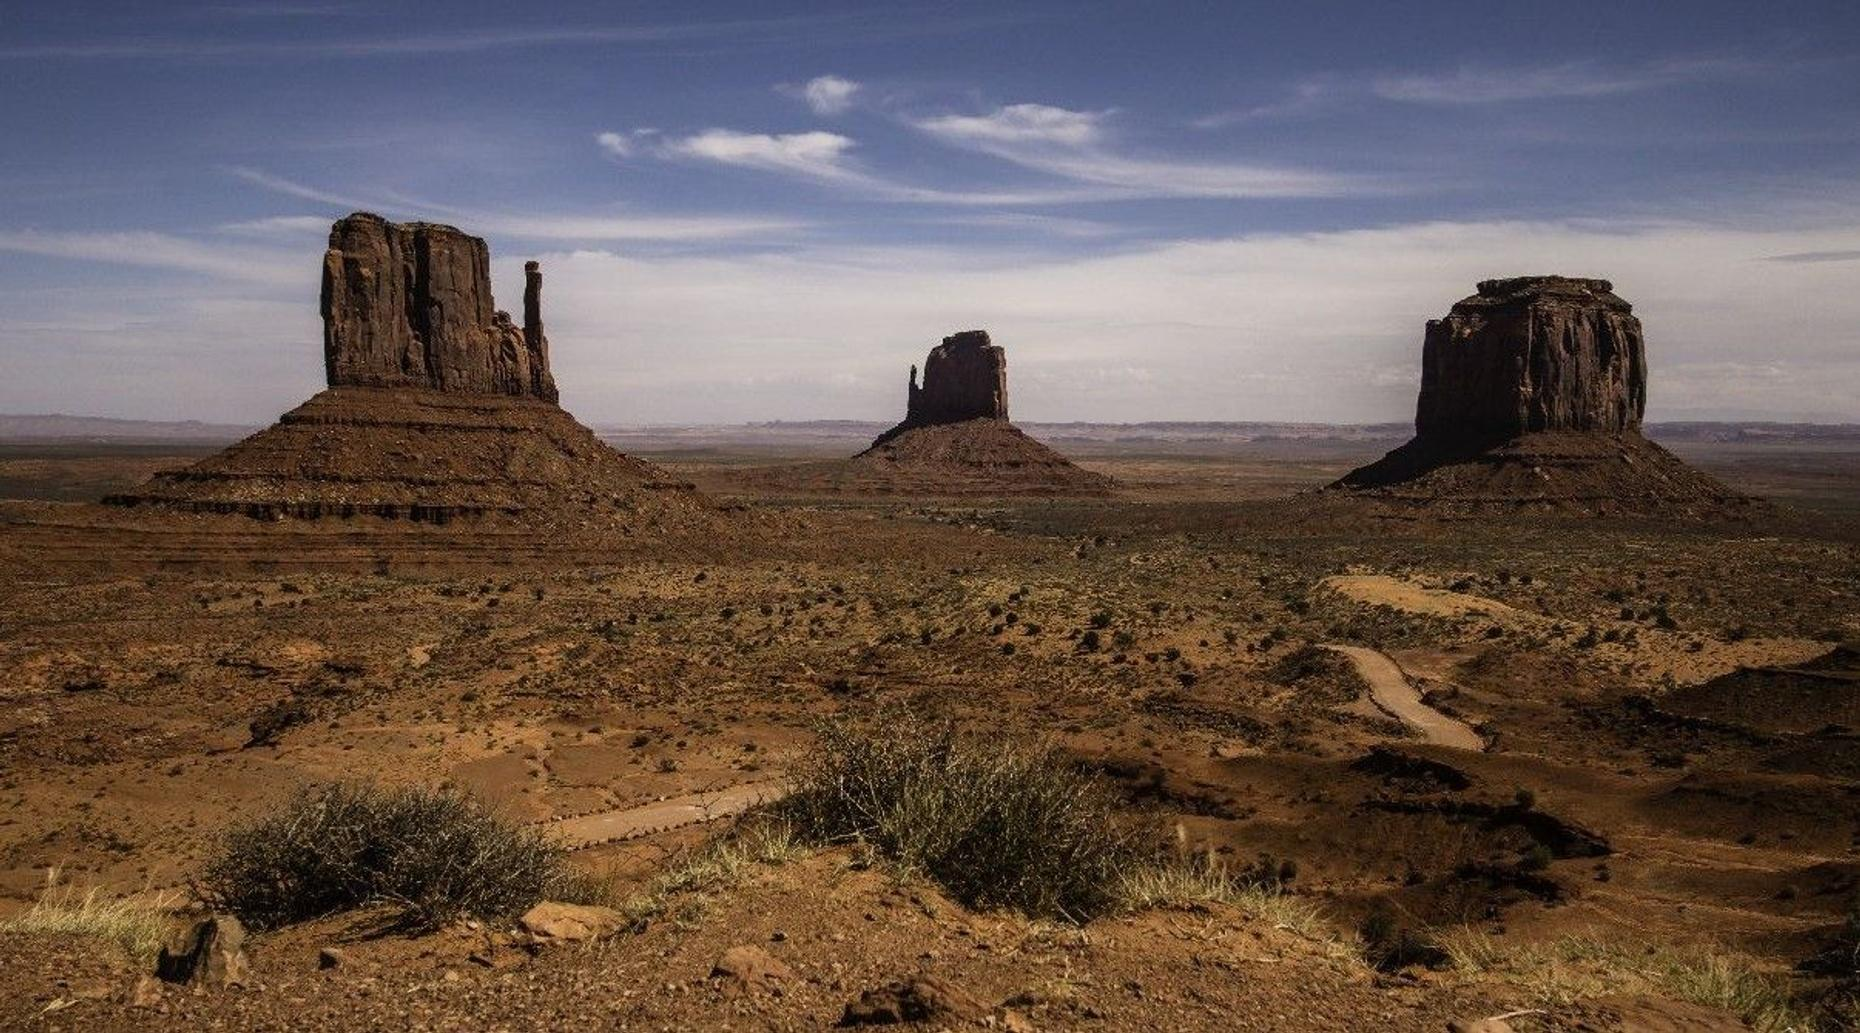 2.5 Hour Monument Valley Tour